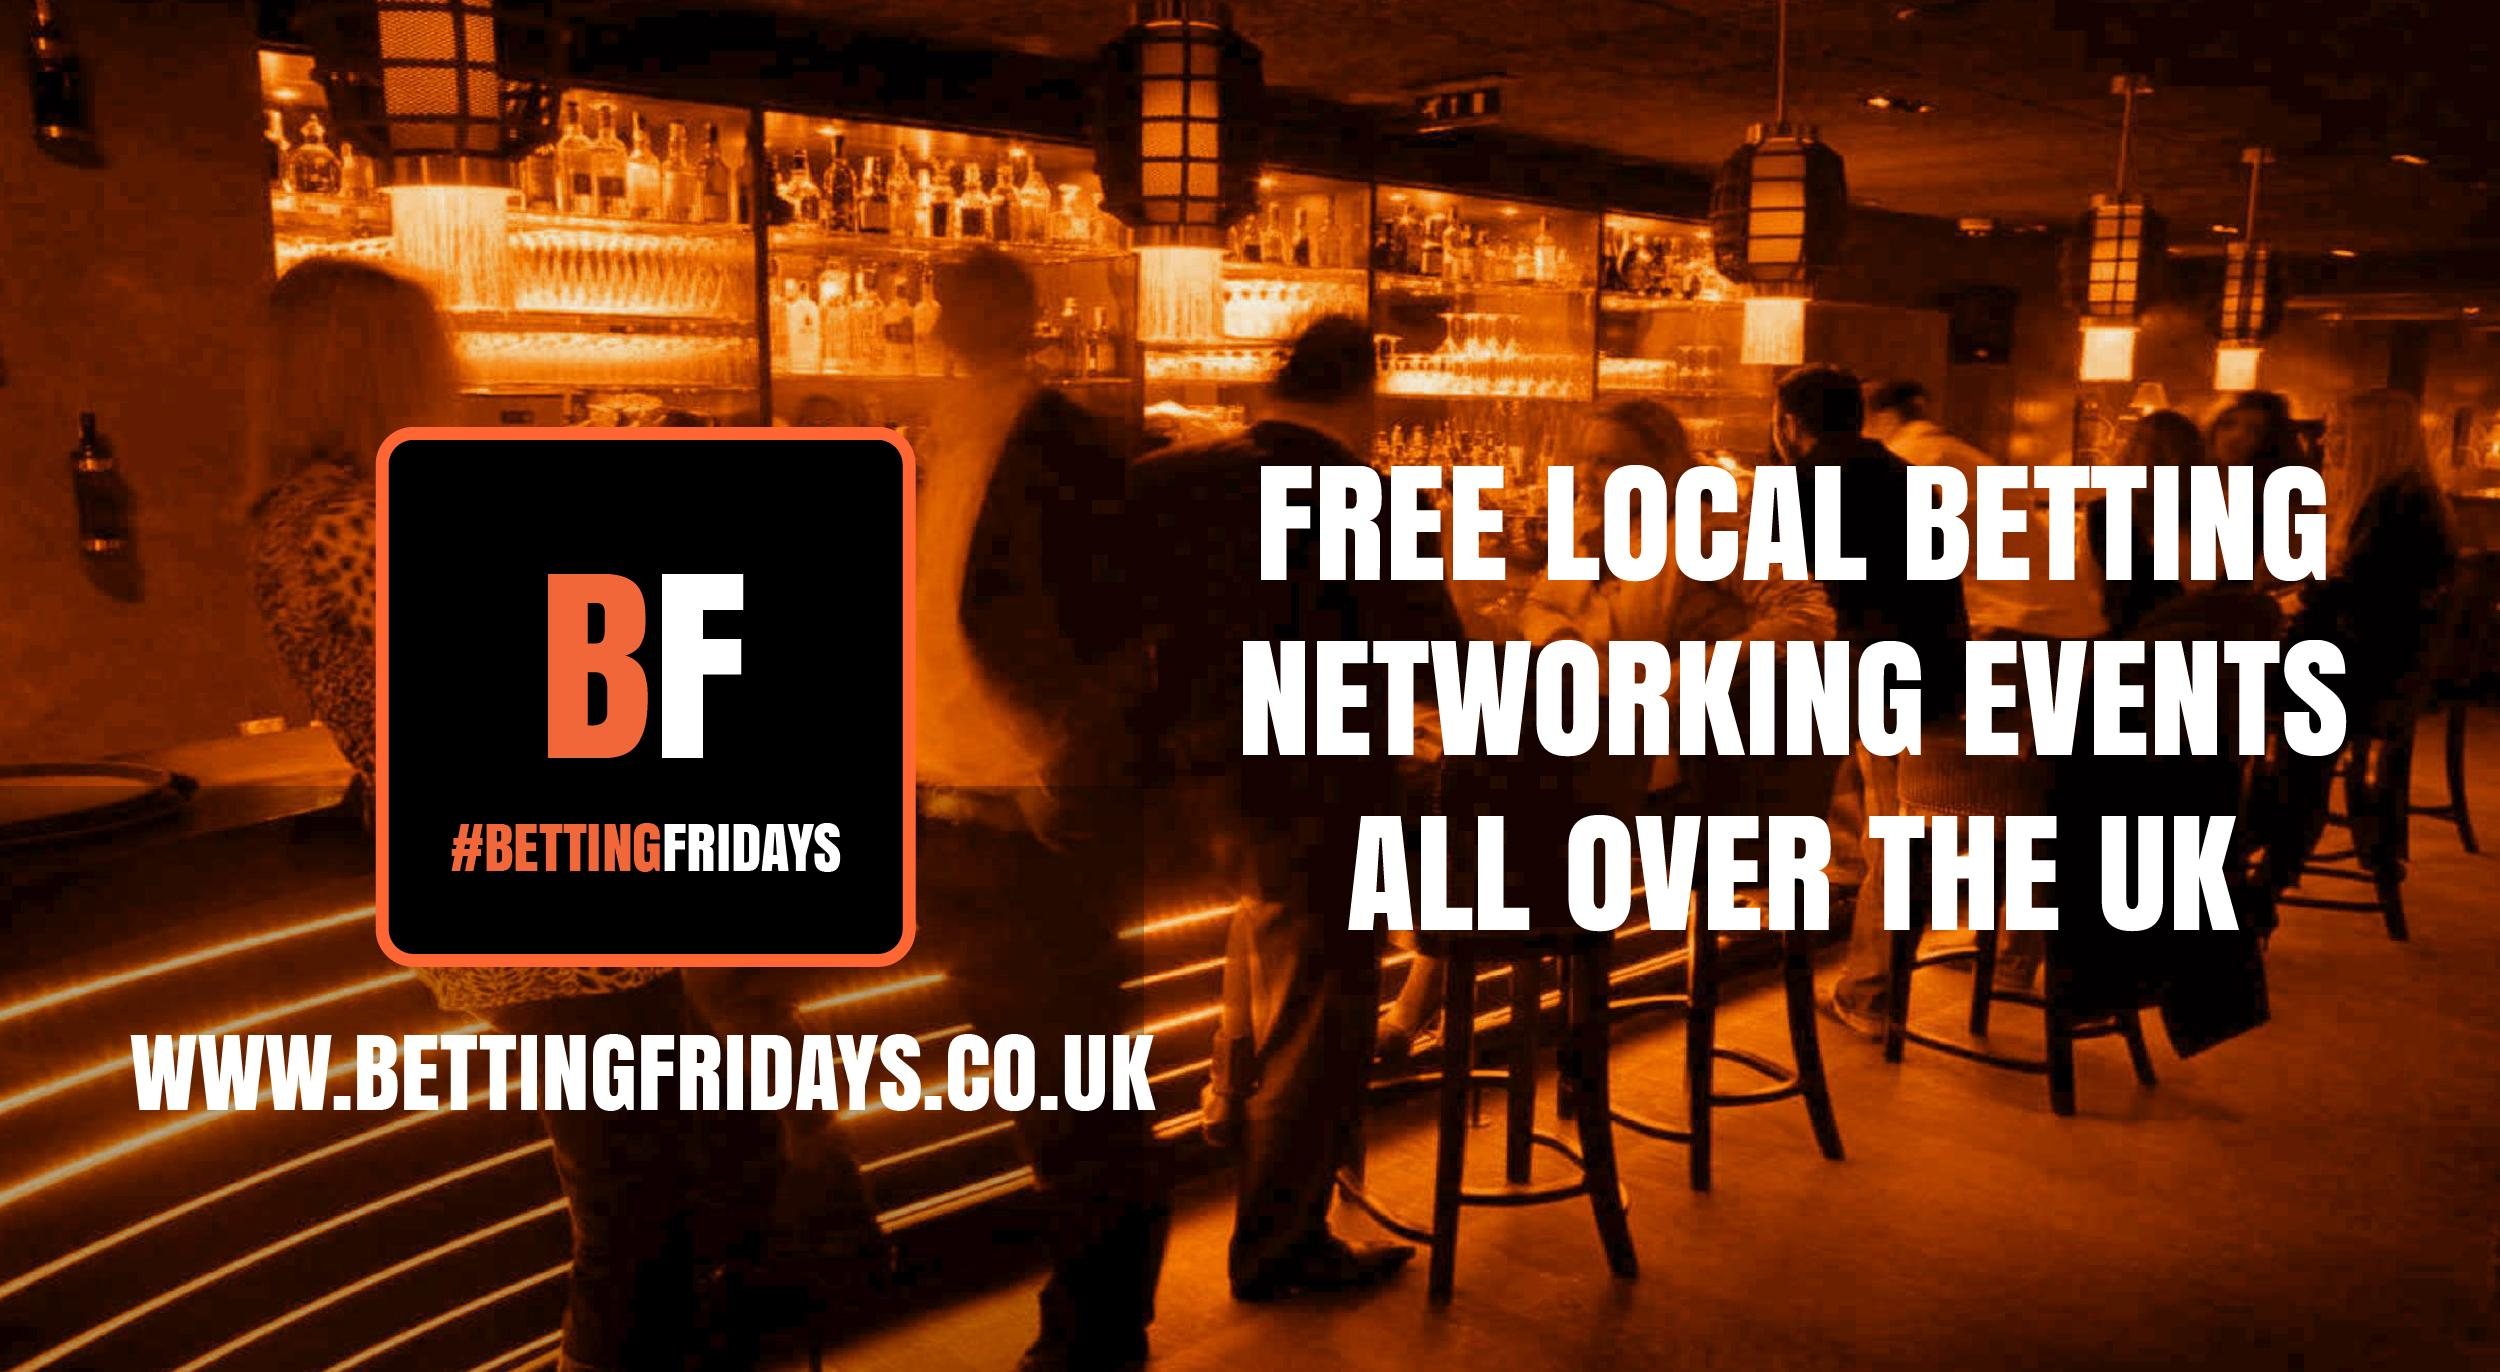 Betting Fridays! Free betting networking event in Fleet